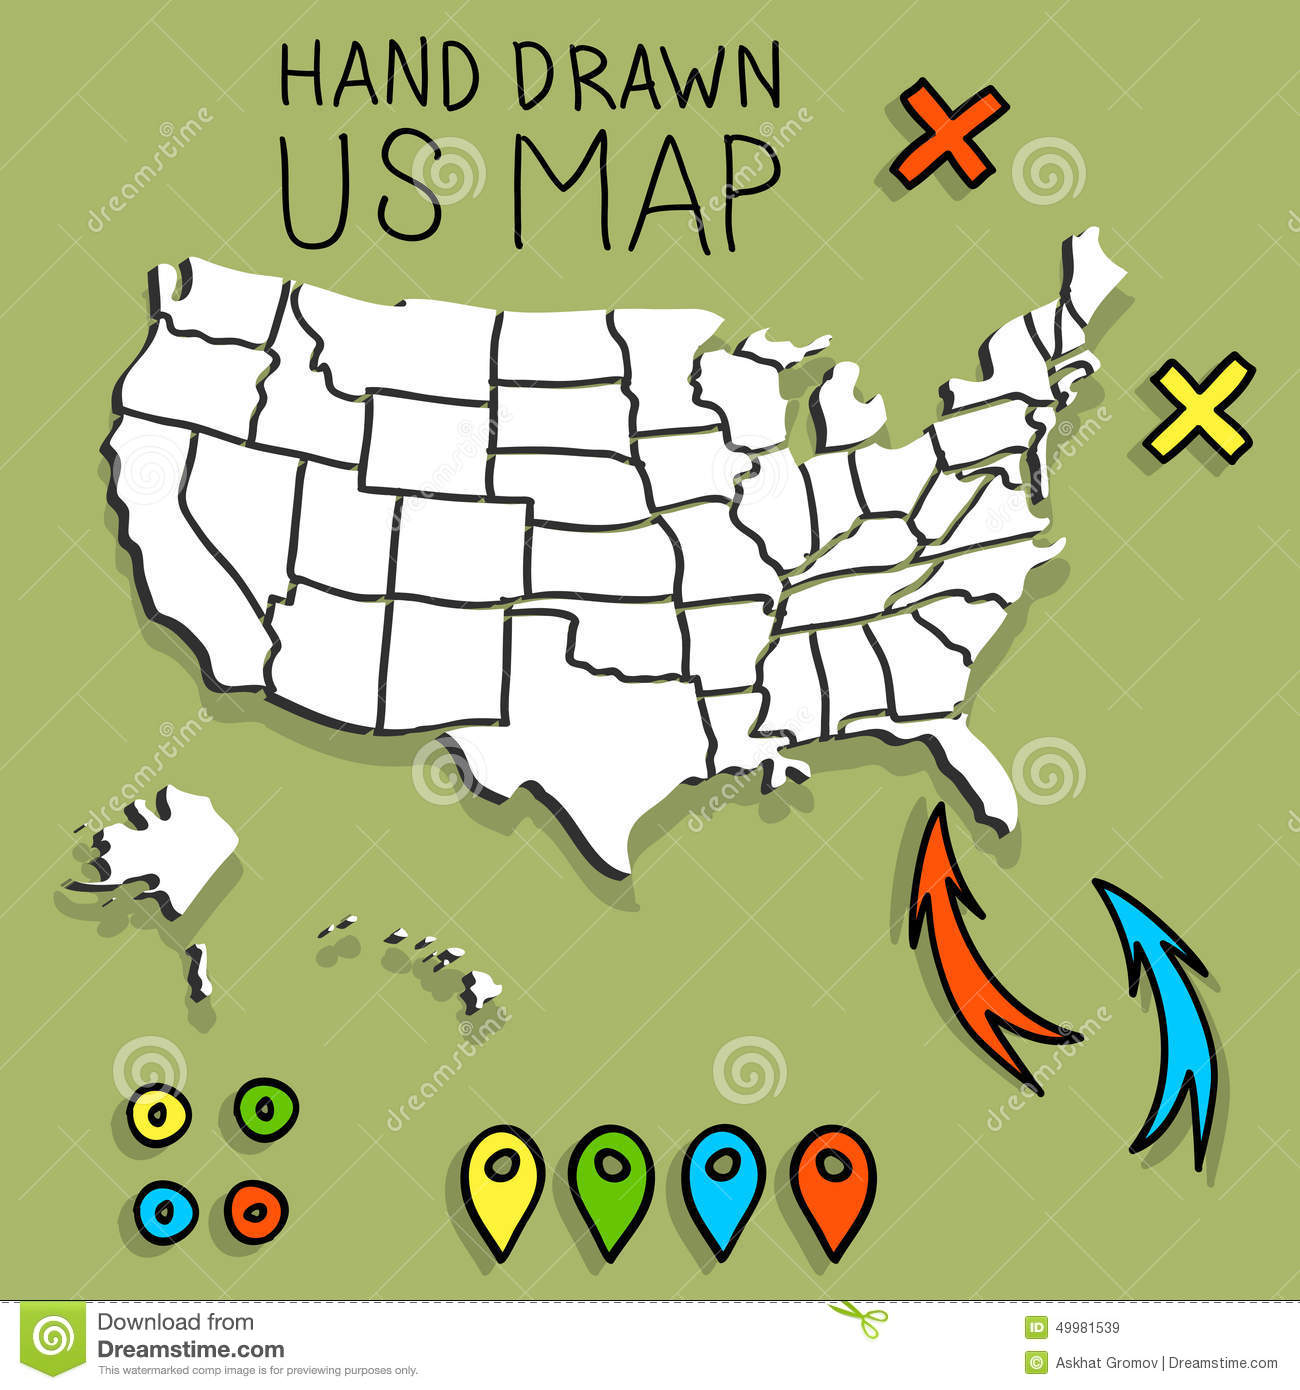 hand drawn us map with pins stock vector illustration of sketch